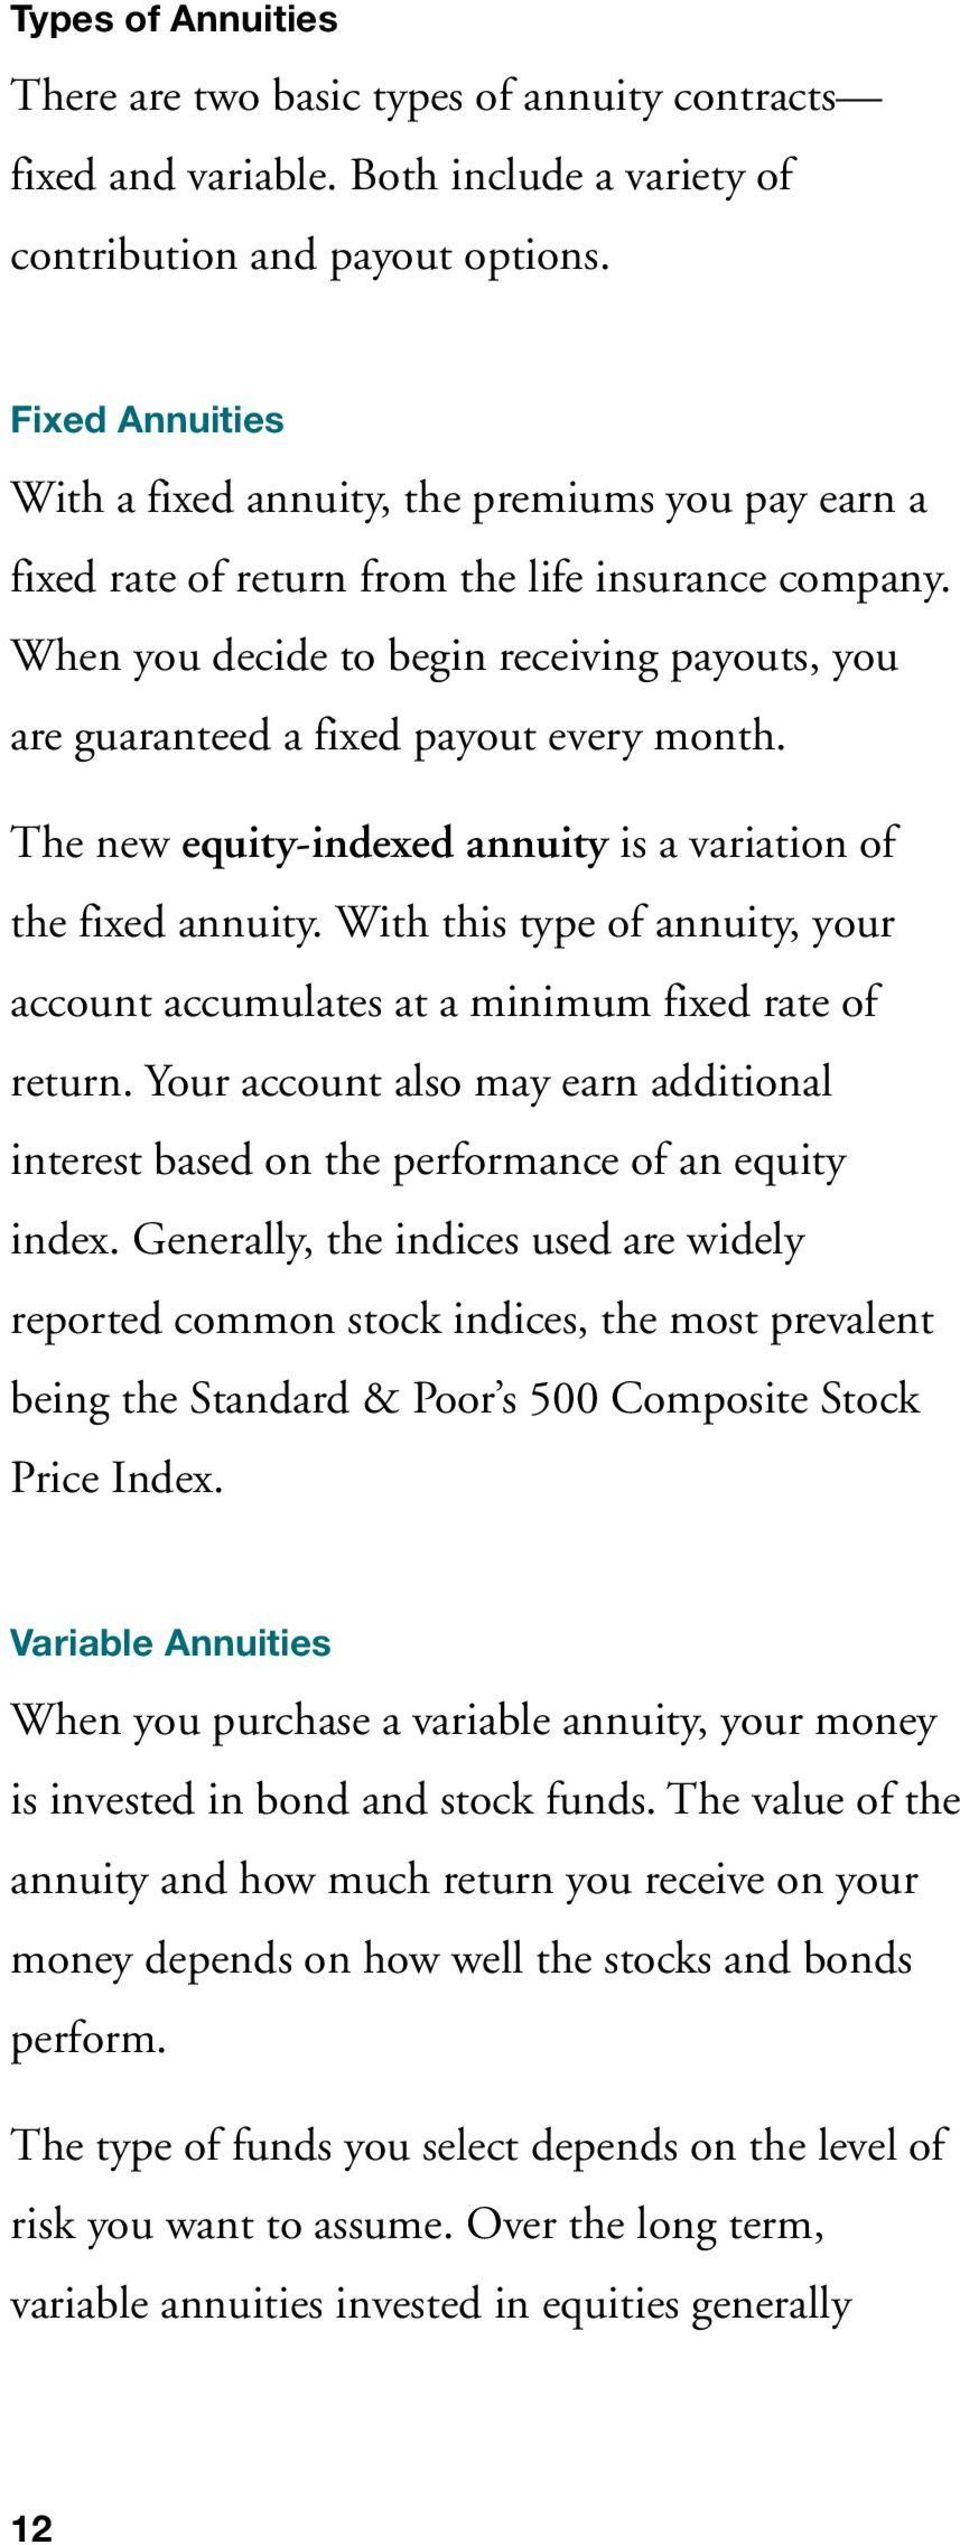 When you decide to begin receiving payouts, you are guaranteed a fixed payout every month. The new equity-indexed annuity is a variation of the fixed annuity.